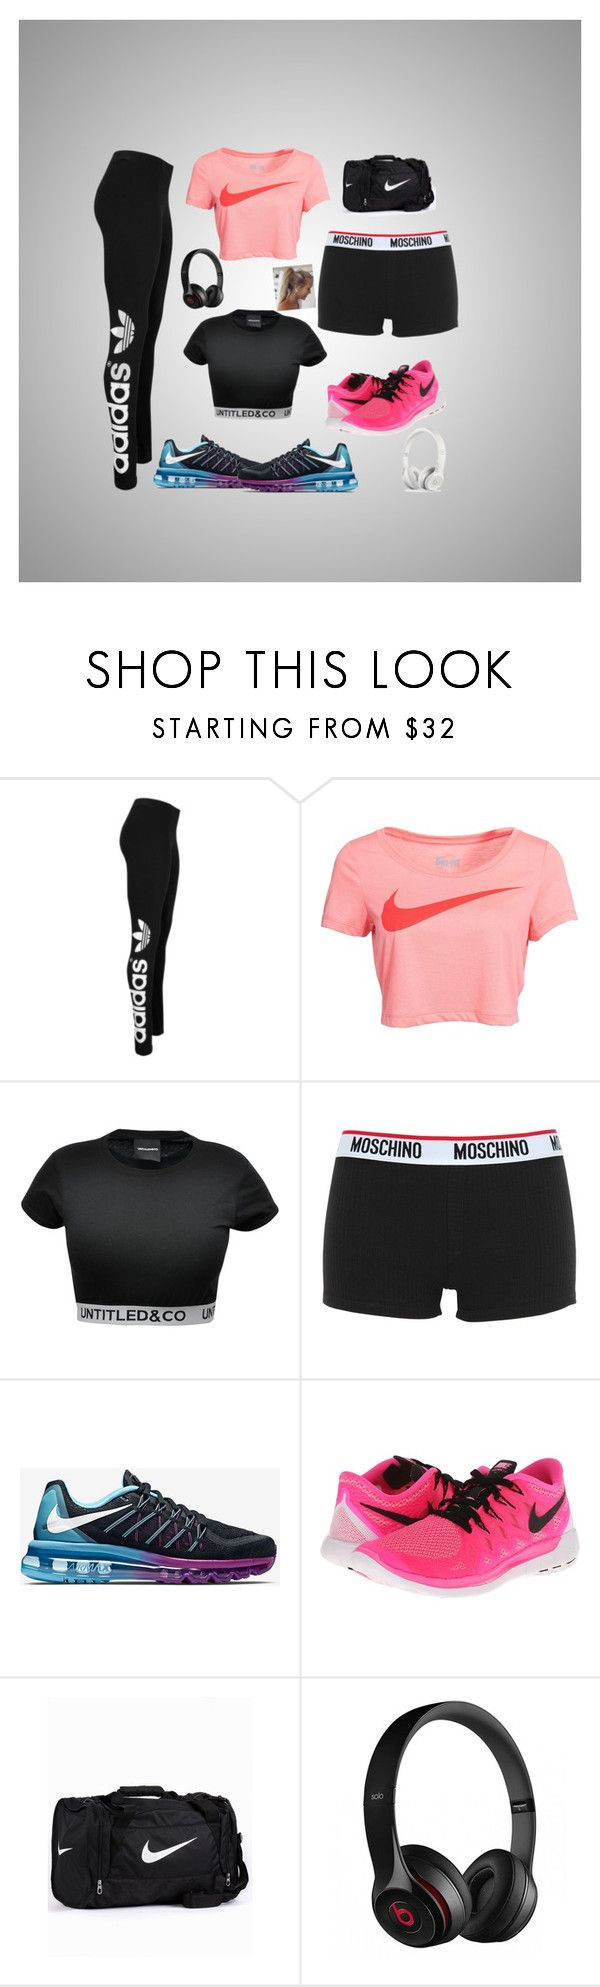 """GymBound"" by styler208 ❤ liked on Polyvore featuring adidas Originals, NIKE, CO, Moschino and Beats by Dr. Dre"